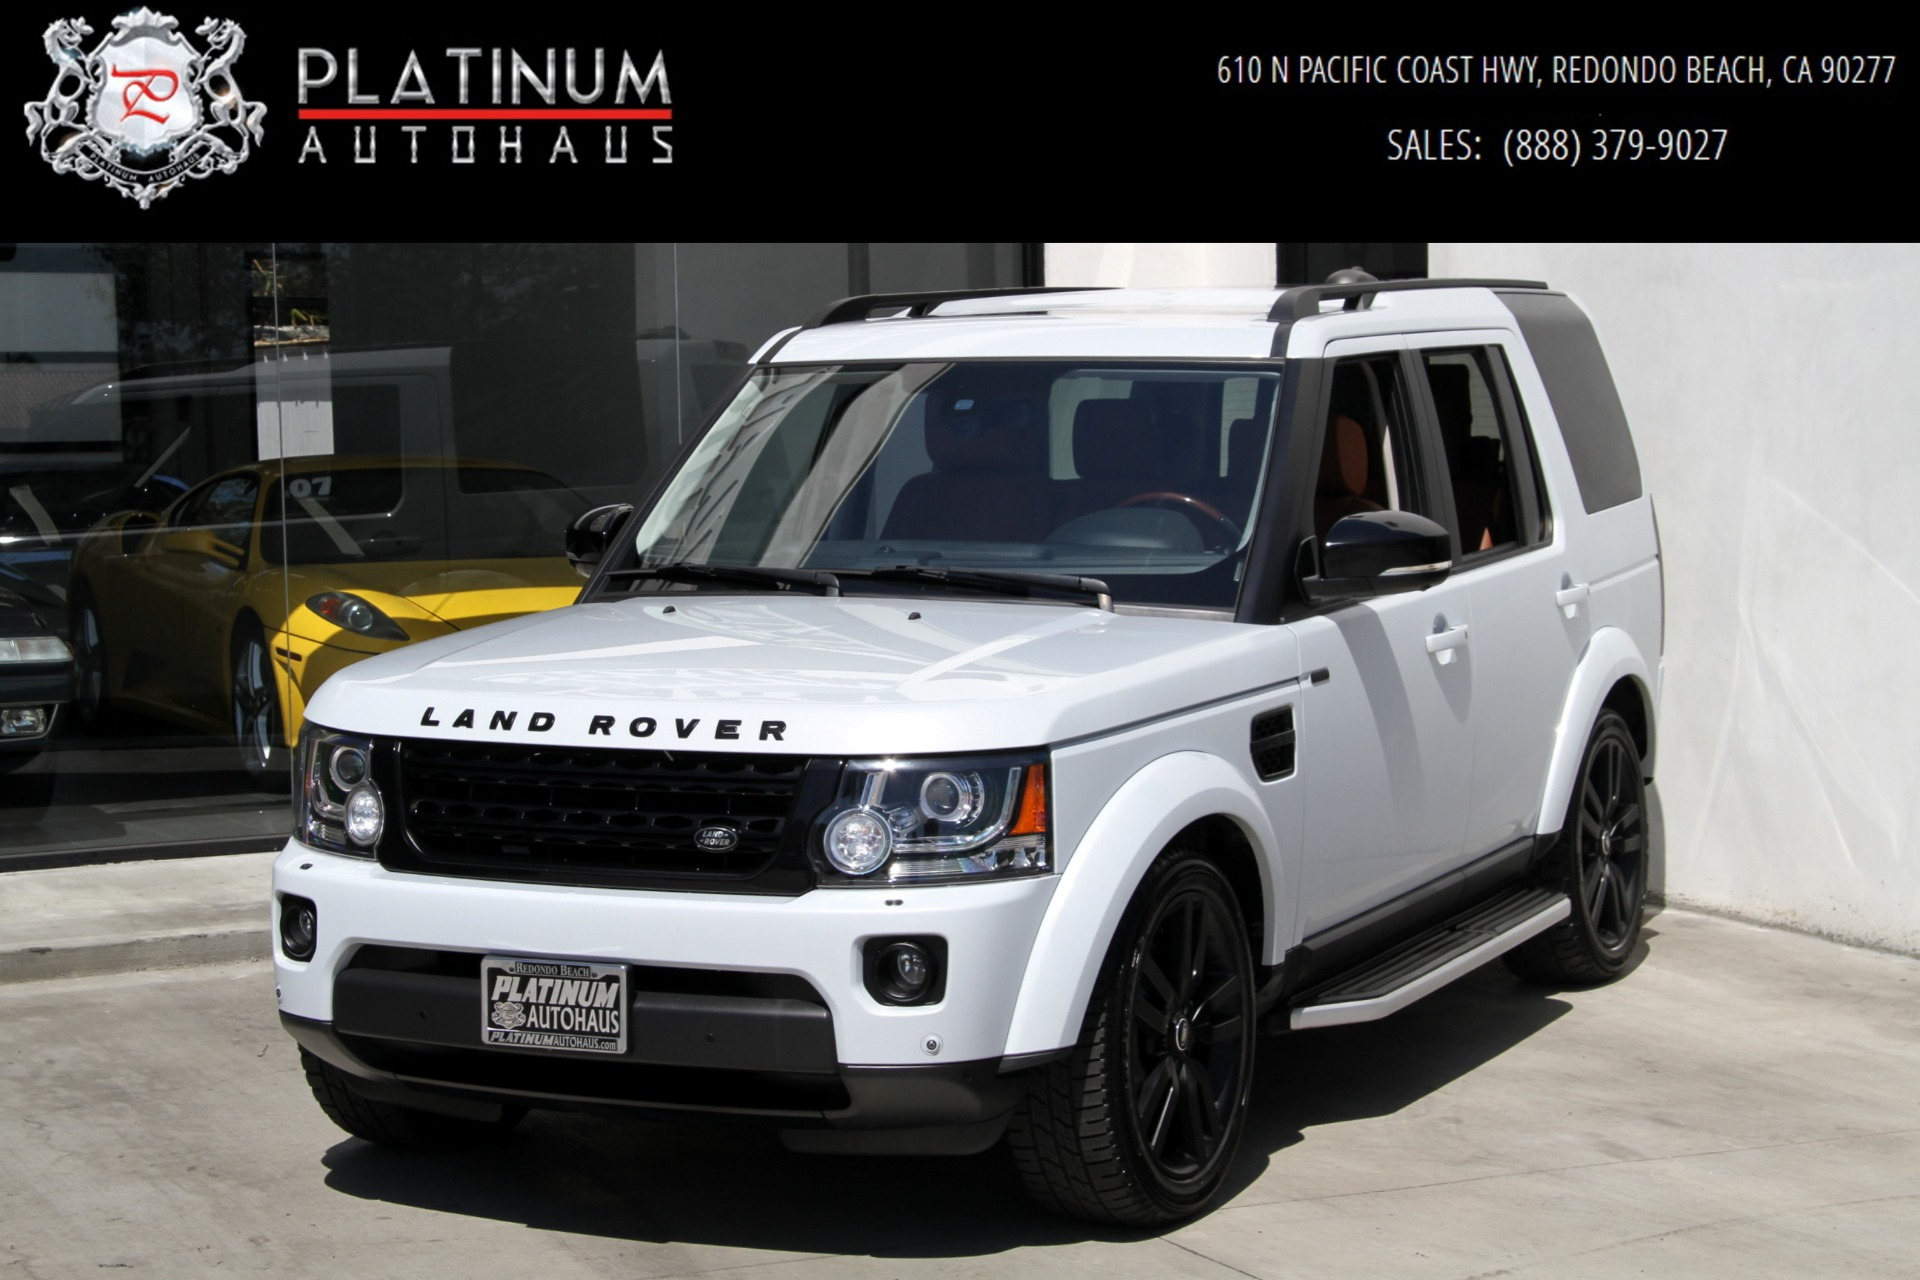 to lux hse resolution black review interior package landrover click rover image open land largest